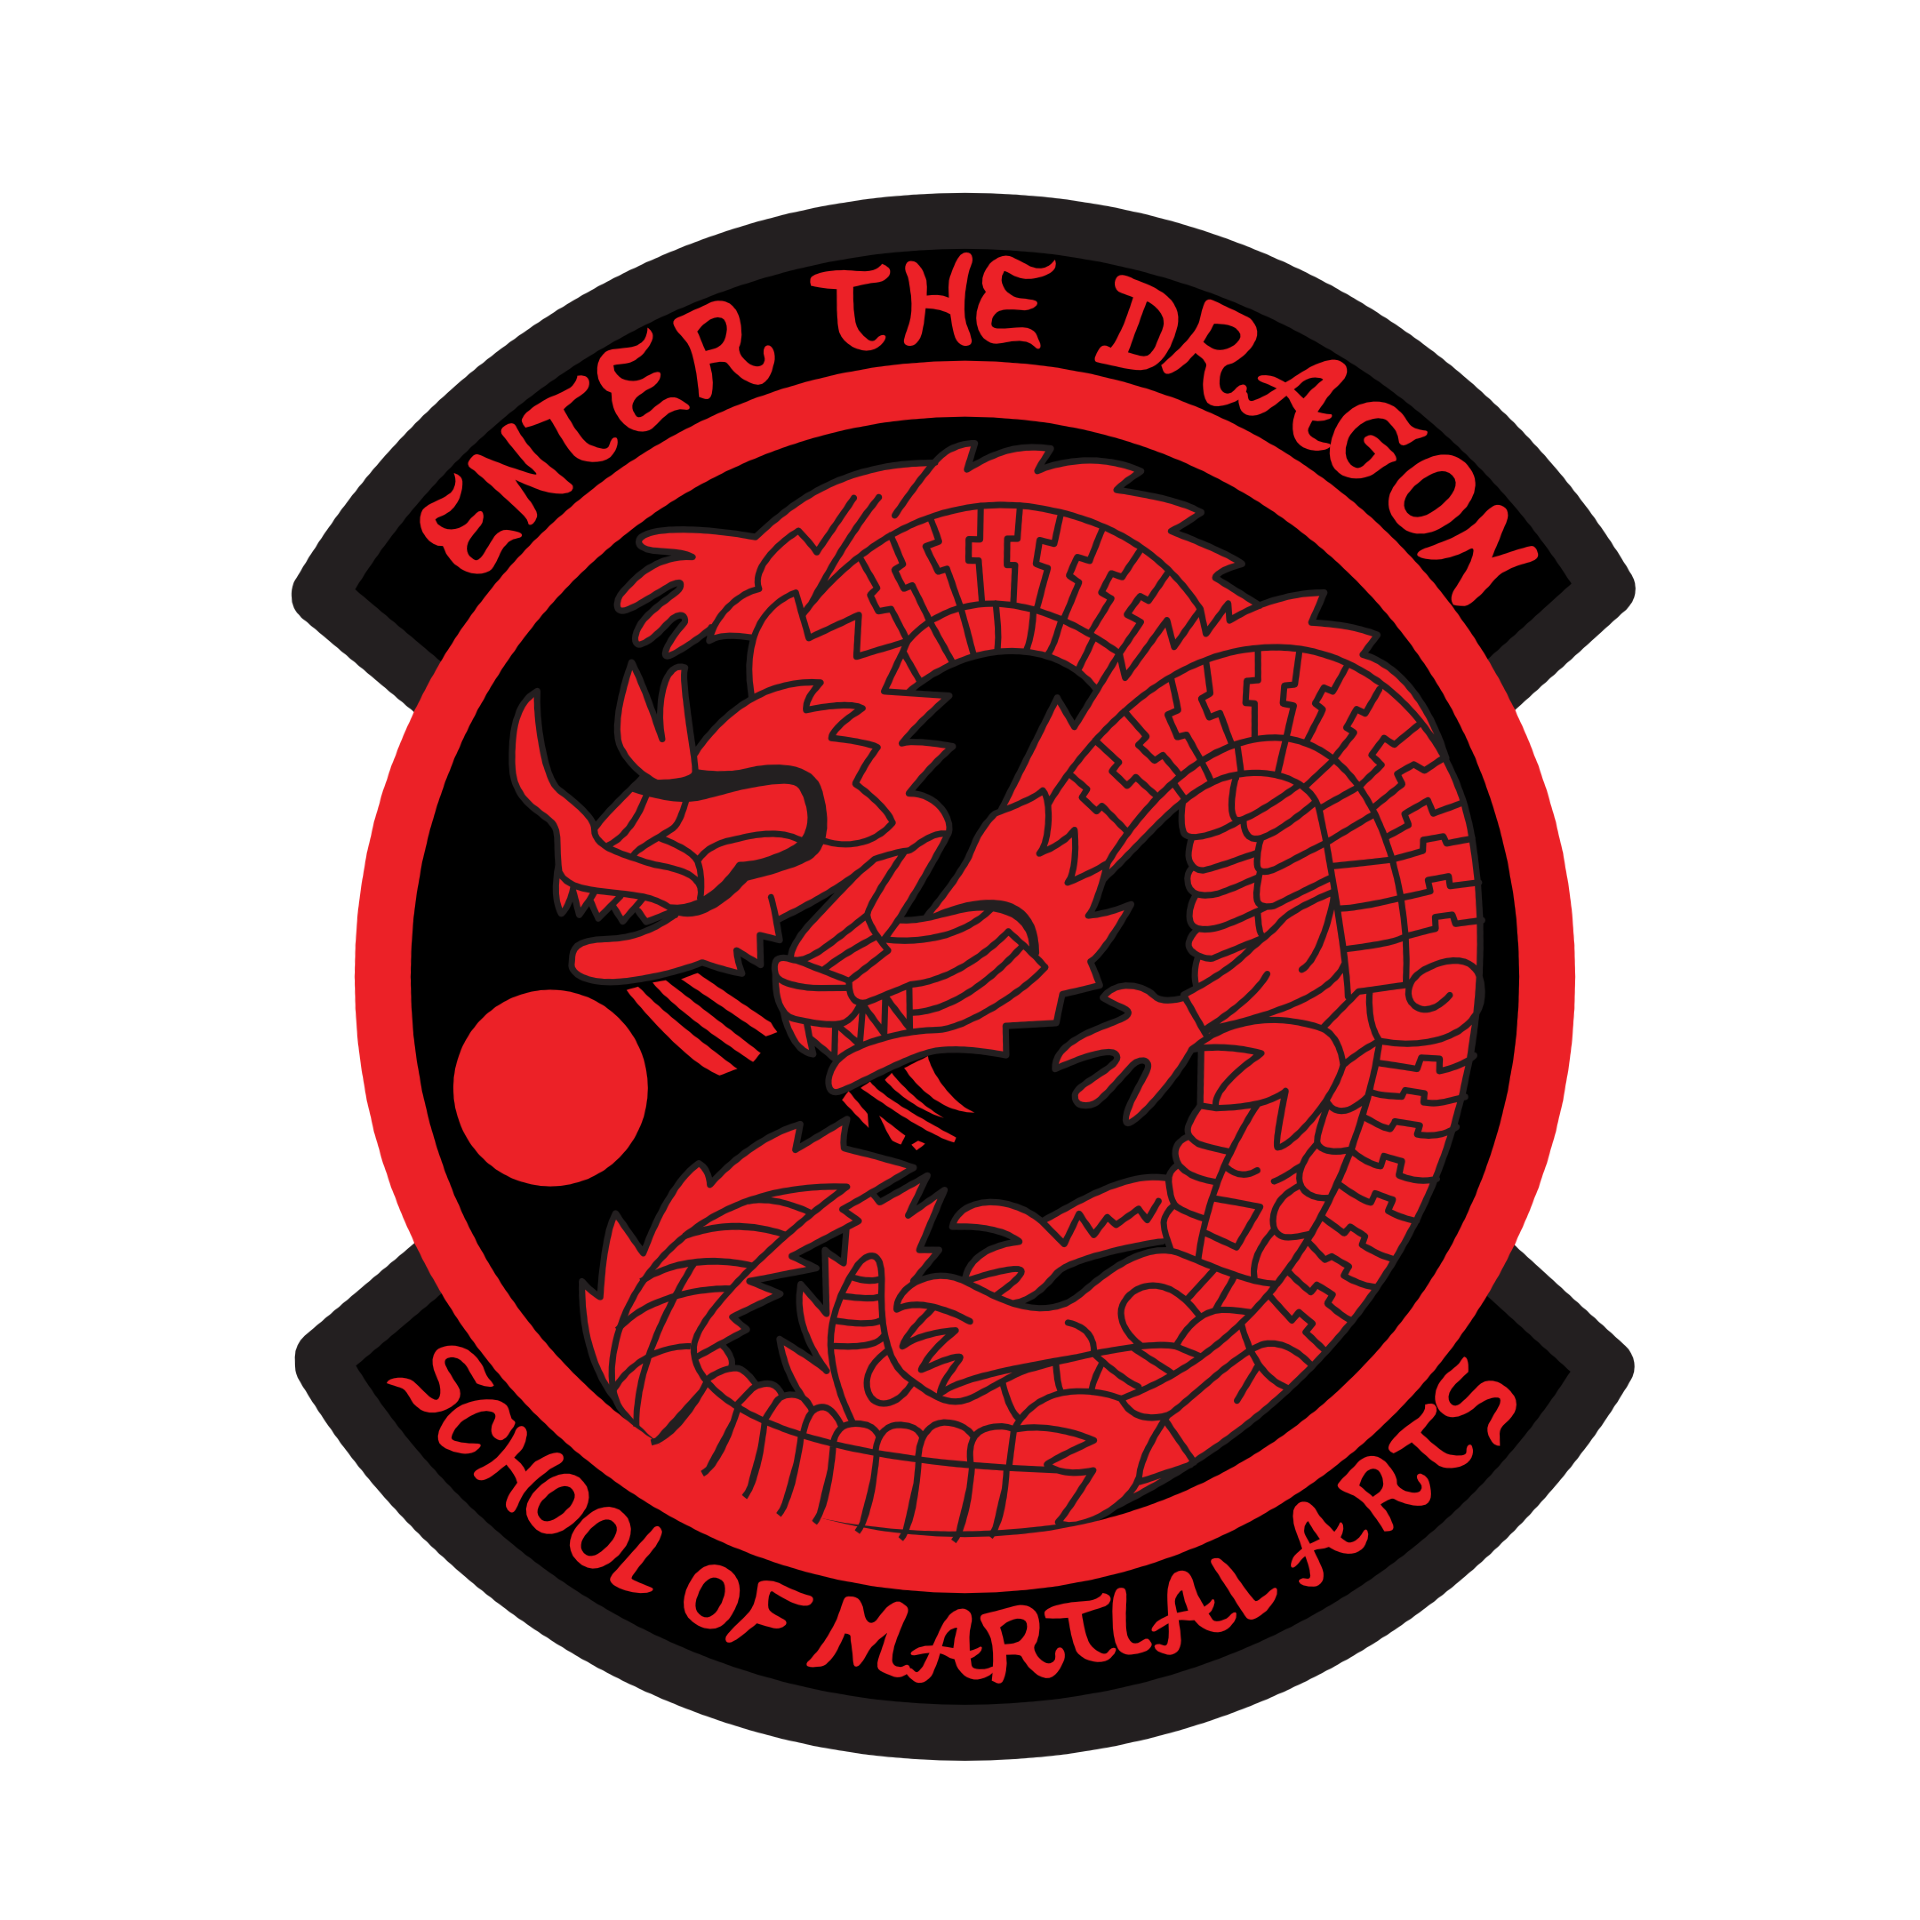 Enter The Dragon School of Martial Arts